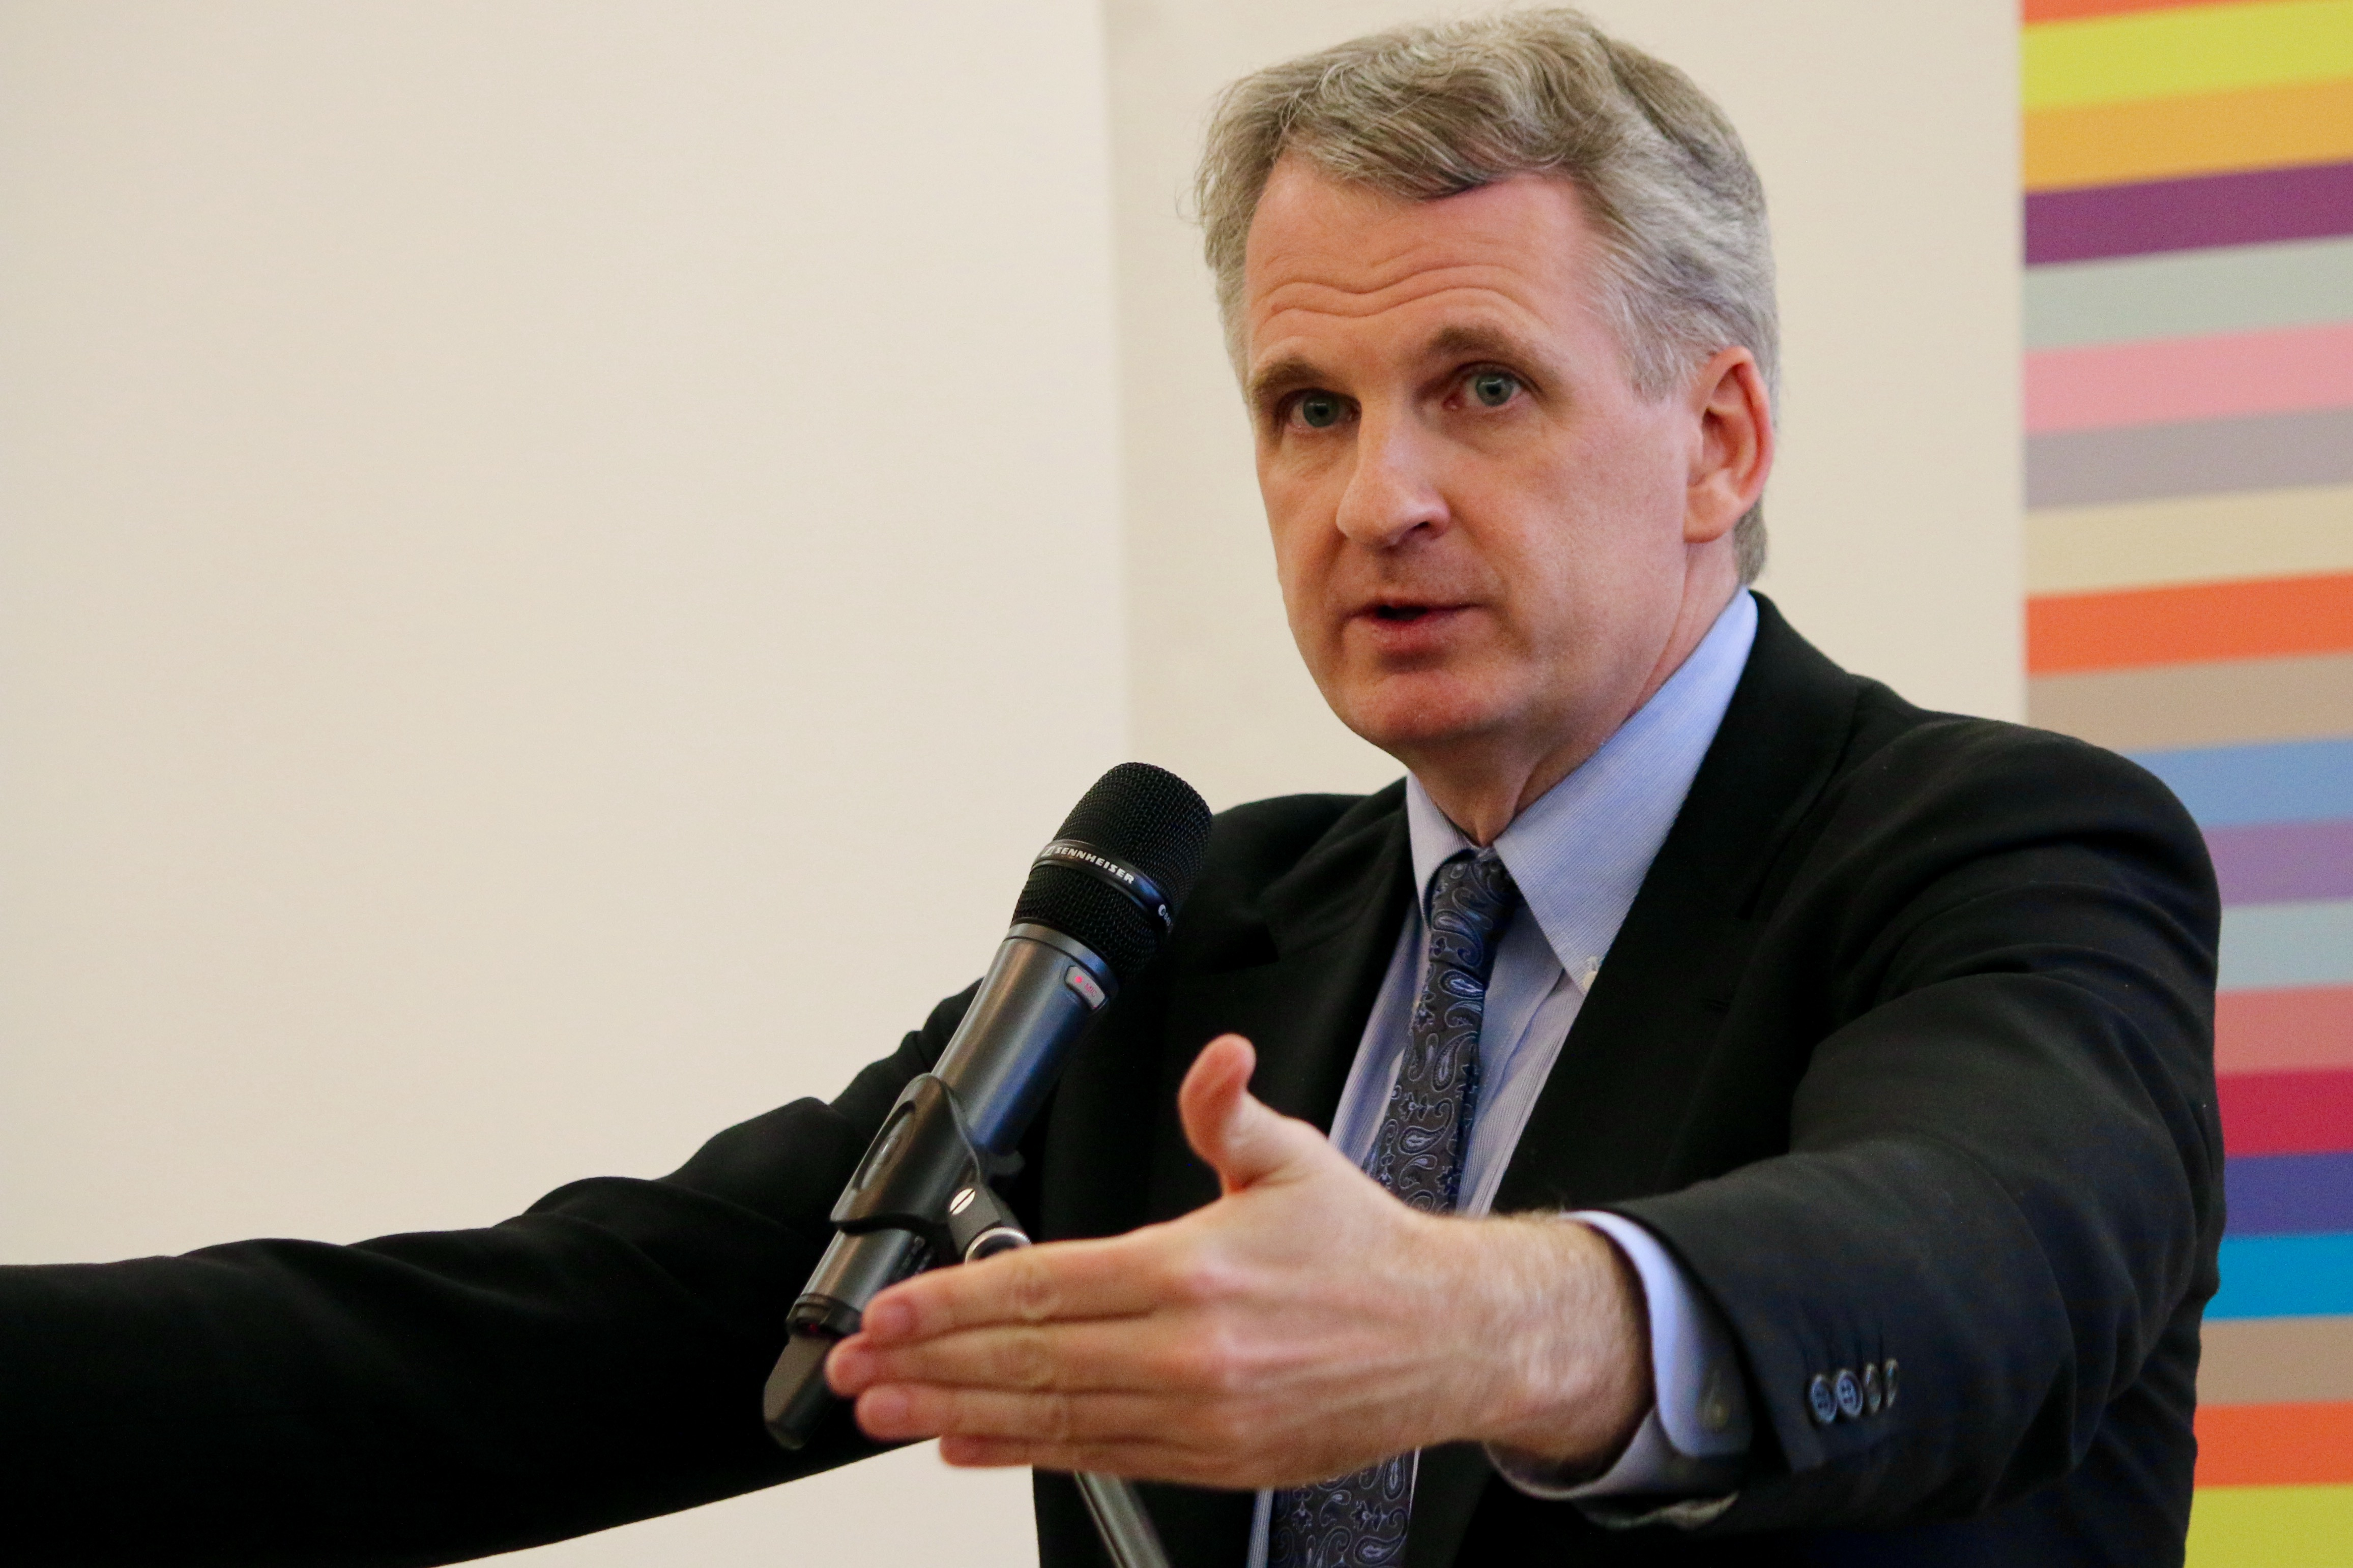 Timothy Snyder lehrt an der Yale University. Foto: Frauemacht [CC BY-SA 4.0 (https://creativecommons.org/licenses/by-sa/4.0)]